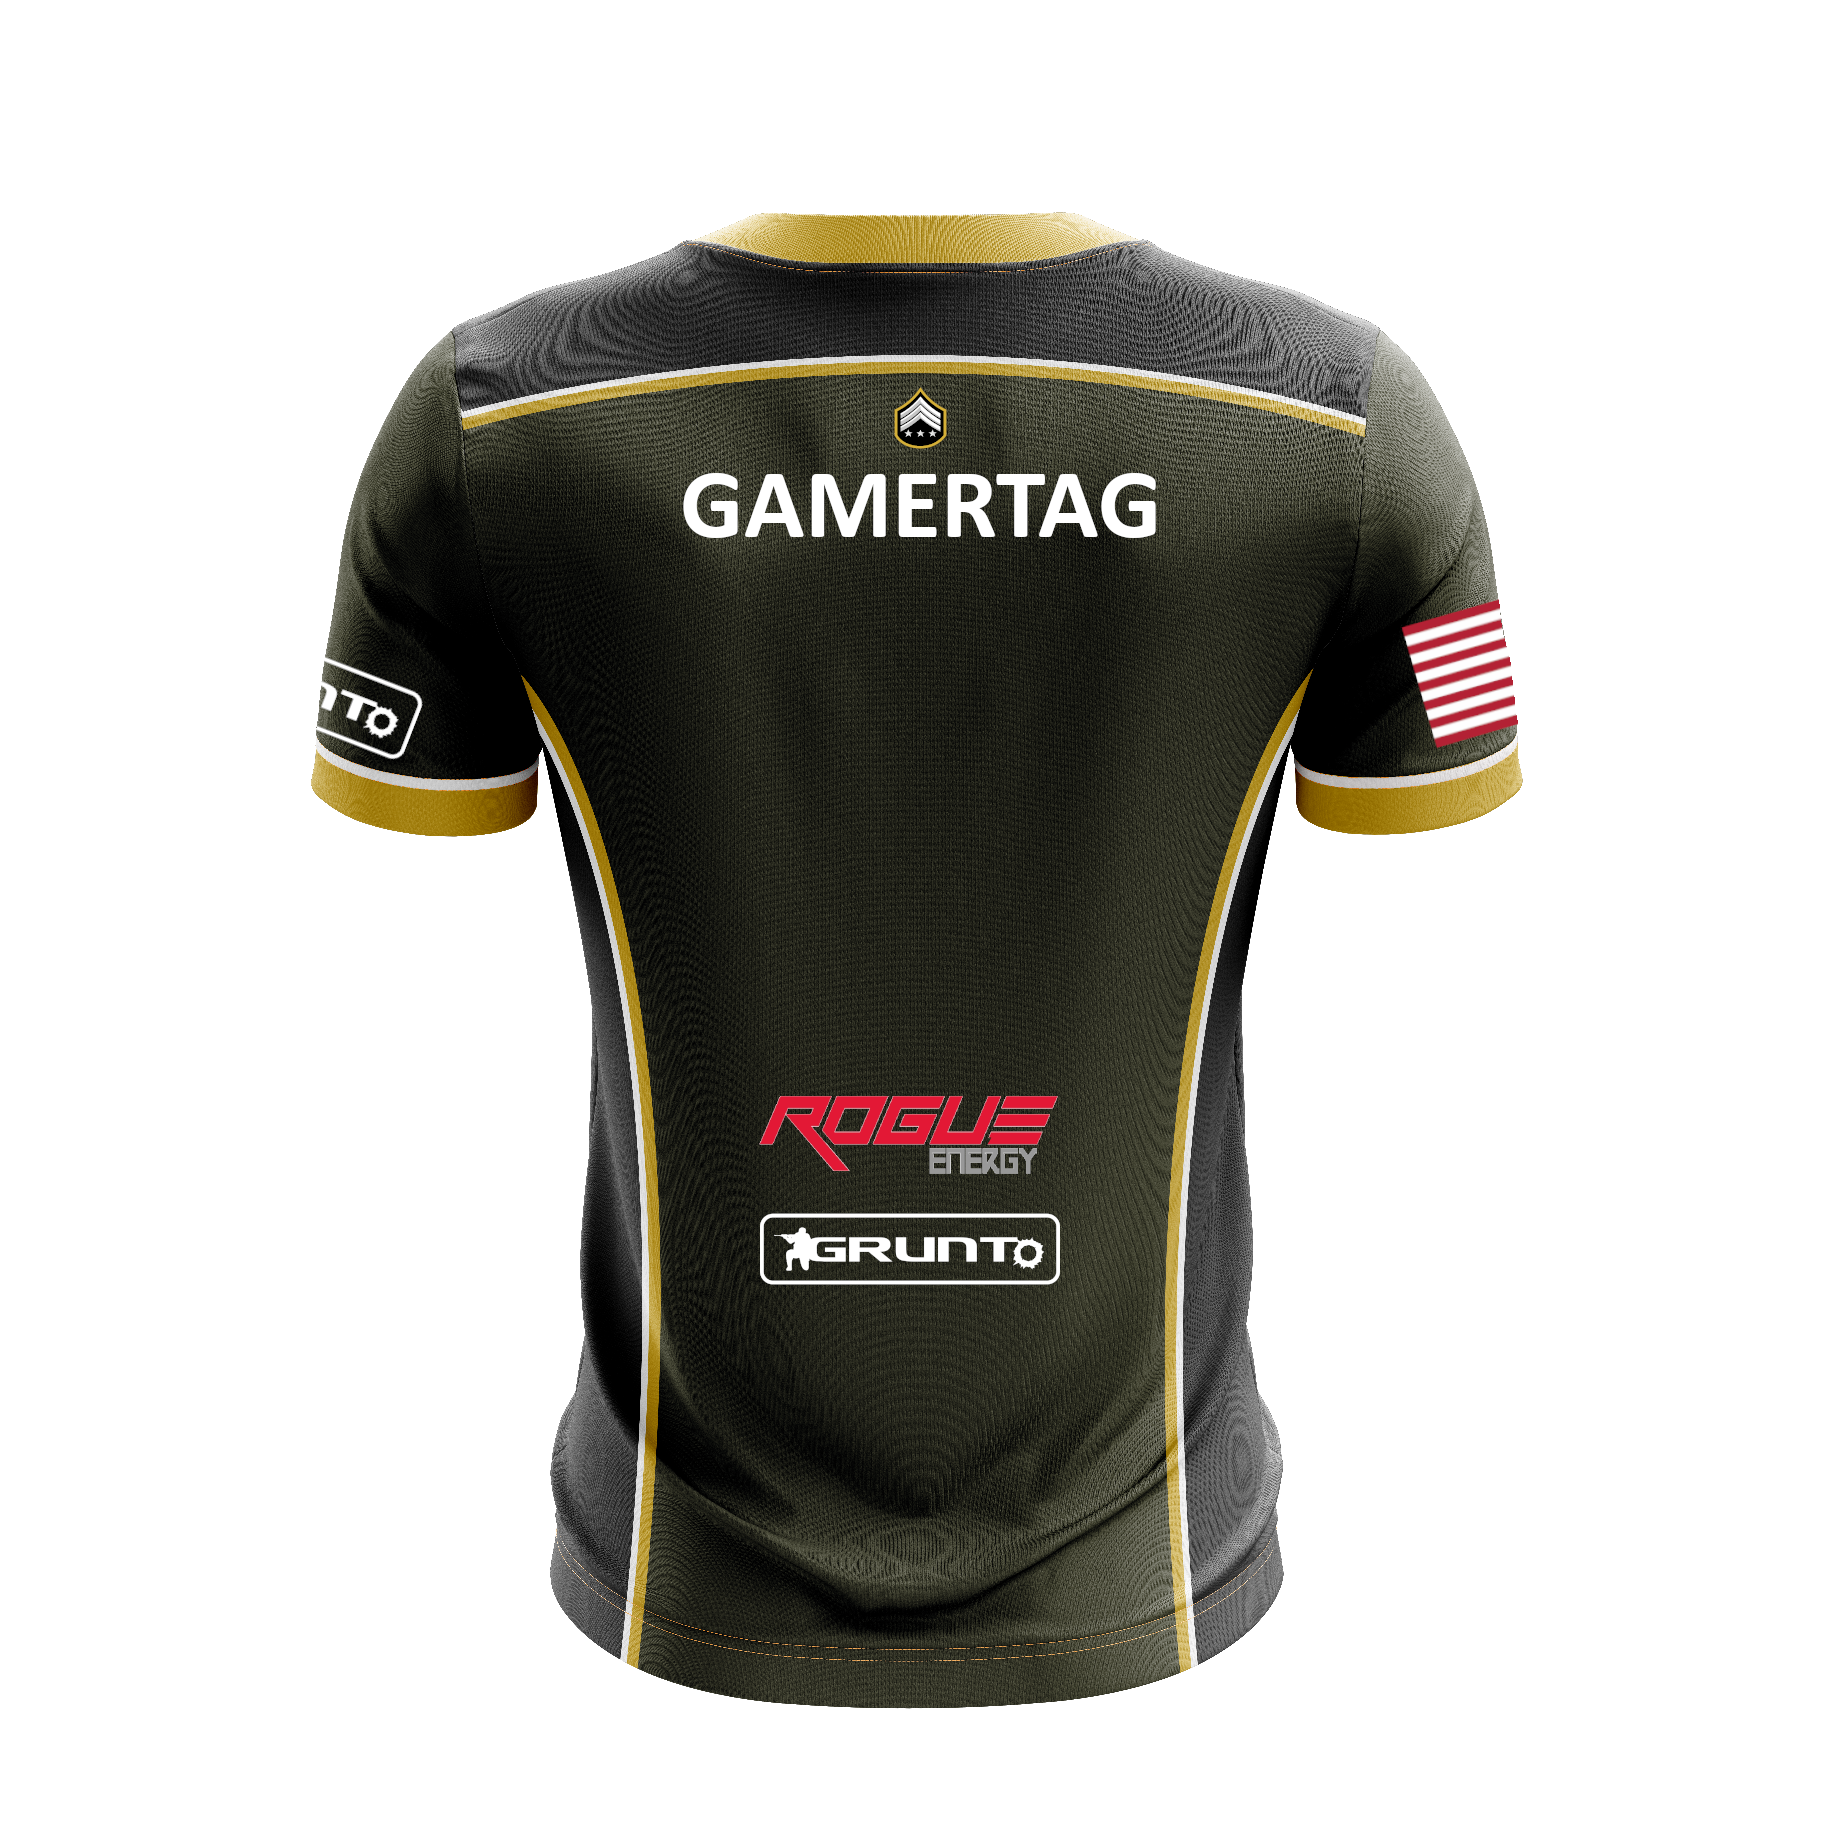 GRUNTo Esports Competitive Jersey